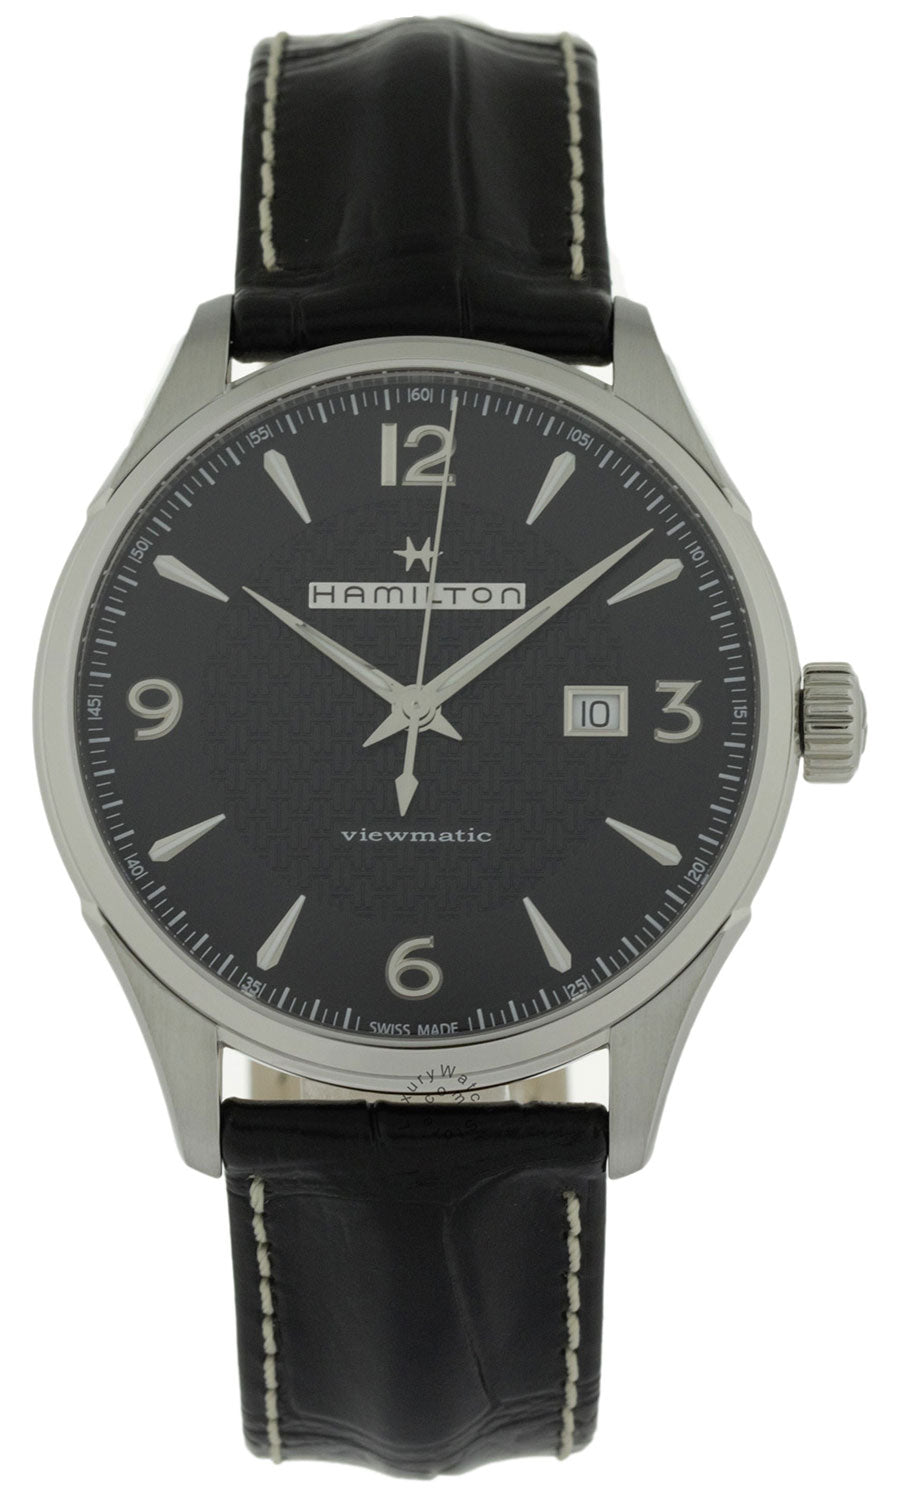 Hamilton Jazzmaster Viewmatic Black Dial Leather Auto Watch H32755731